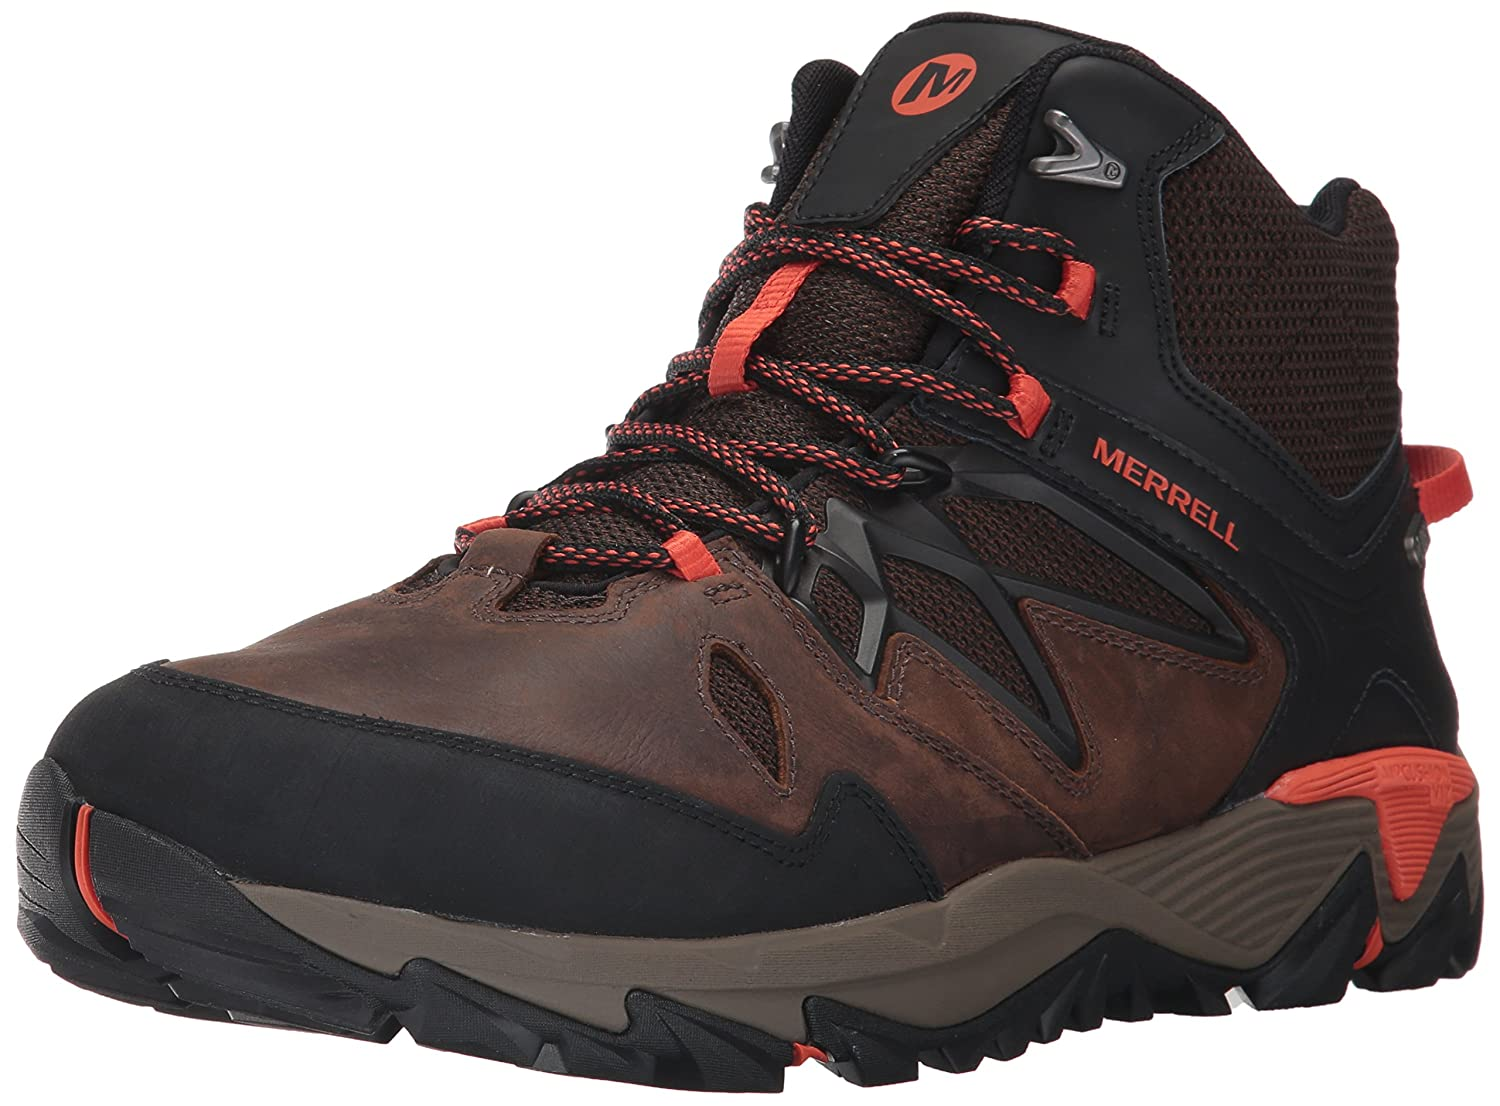 Clay Merrell Men's All Out Blaze 2 Hiking Boot